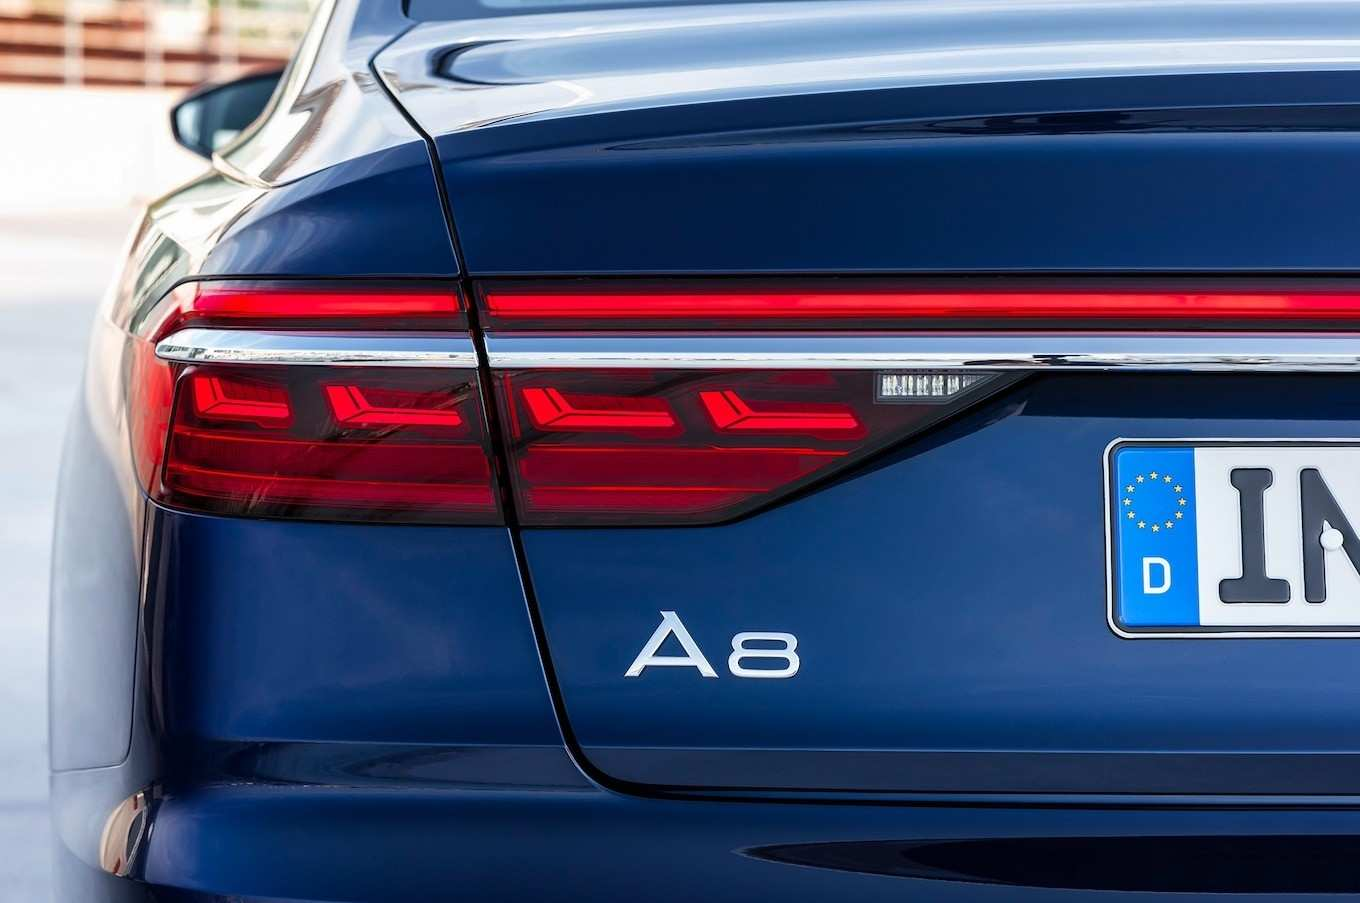 24 Gallery of The Audi 2019 Lights Release Specs And Review Rumors for The Audi 2019 Lights Release Specs And Review